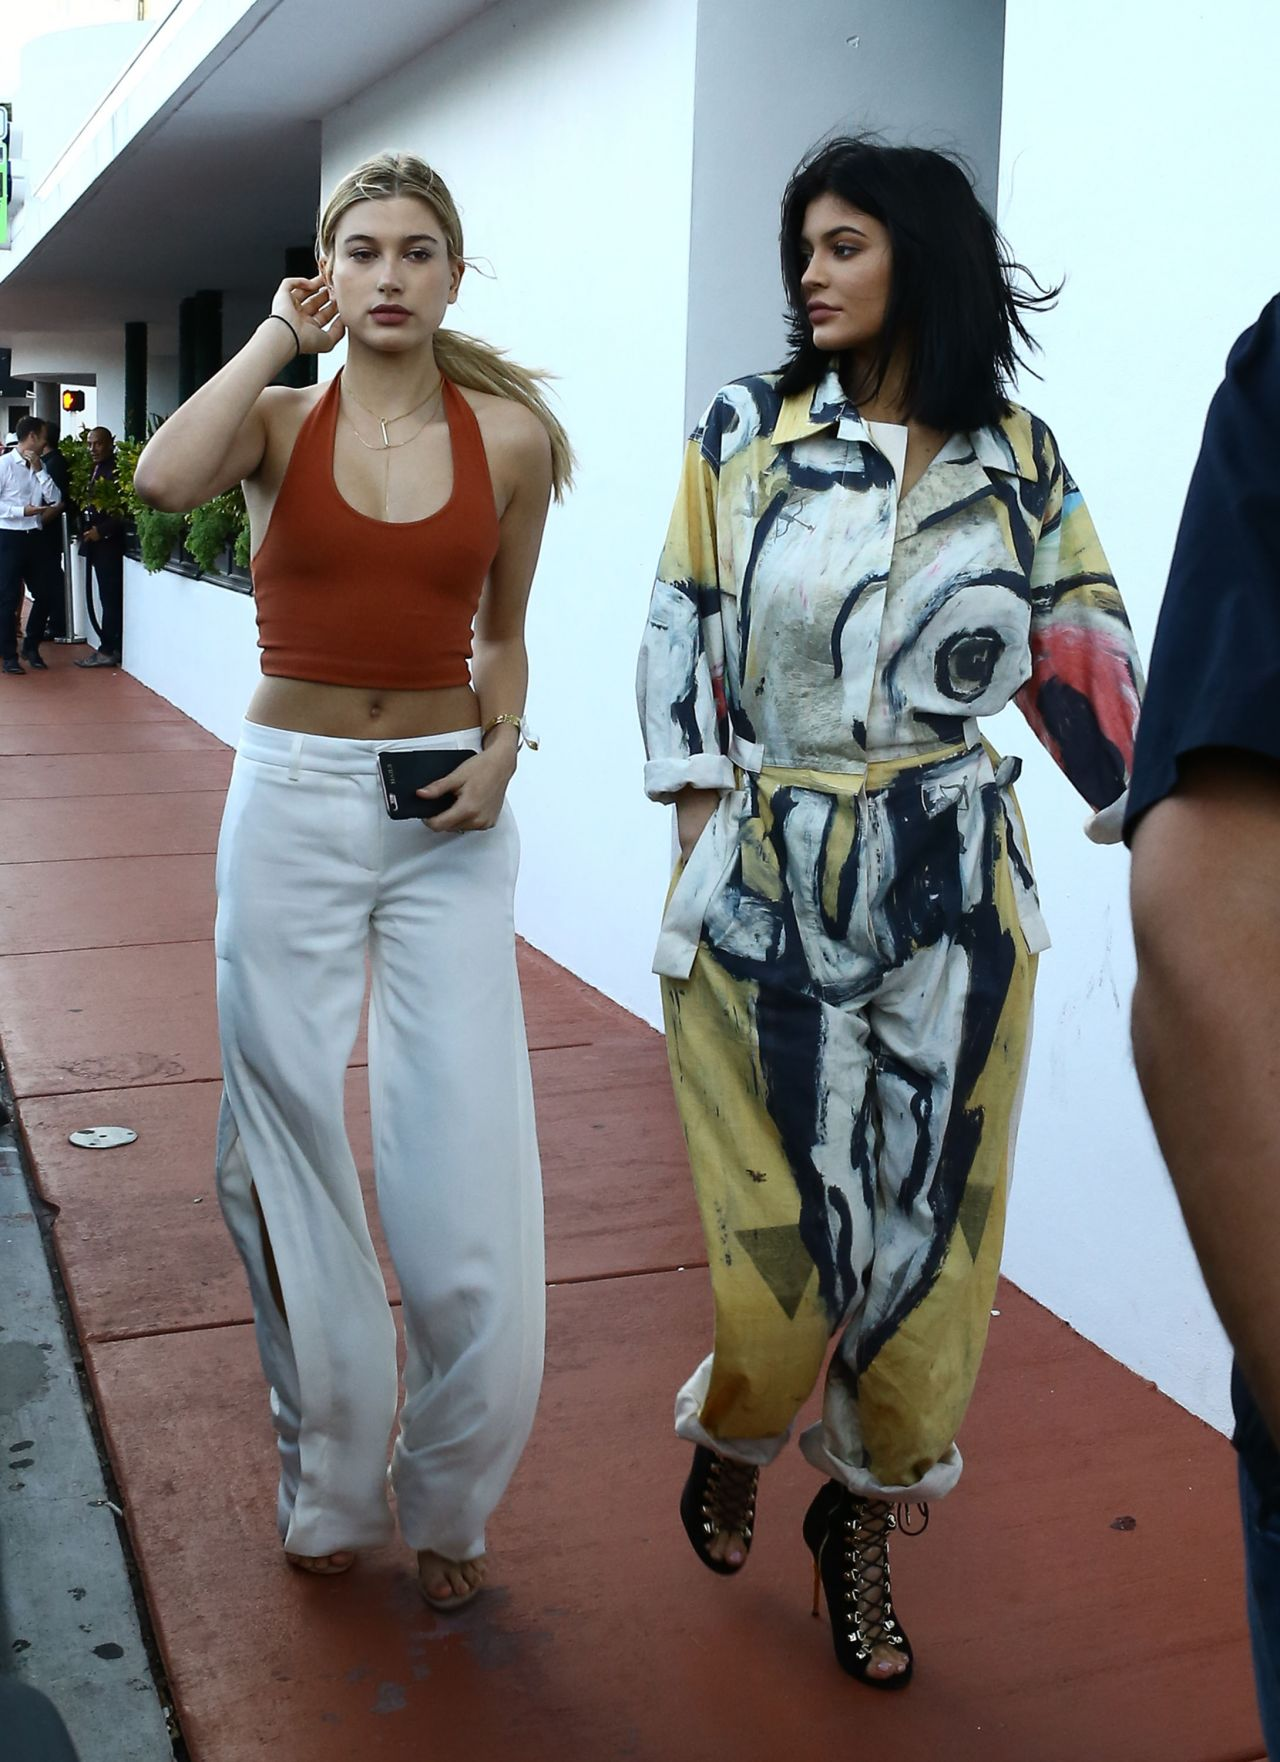 Kylie Jenner And Hailey Baldwin Shopping In Miami 12 6 2015